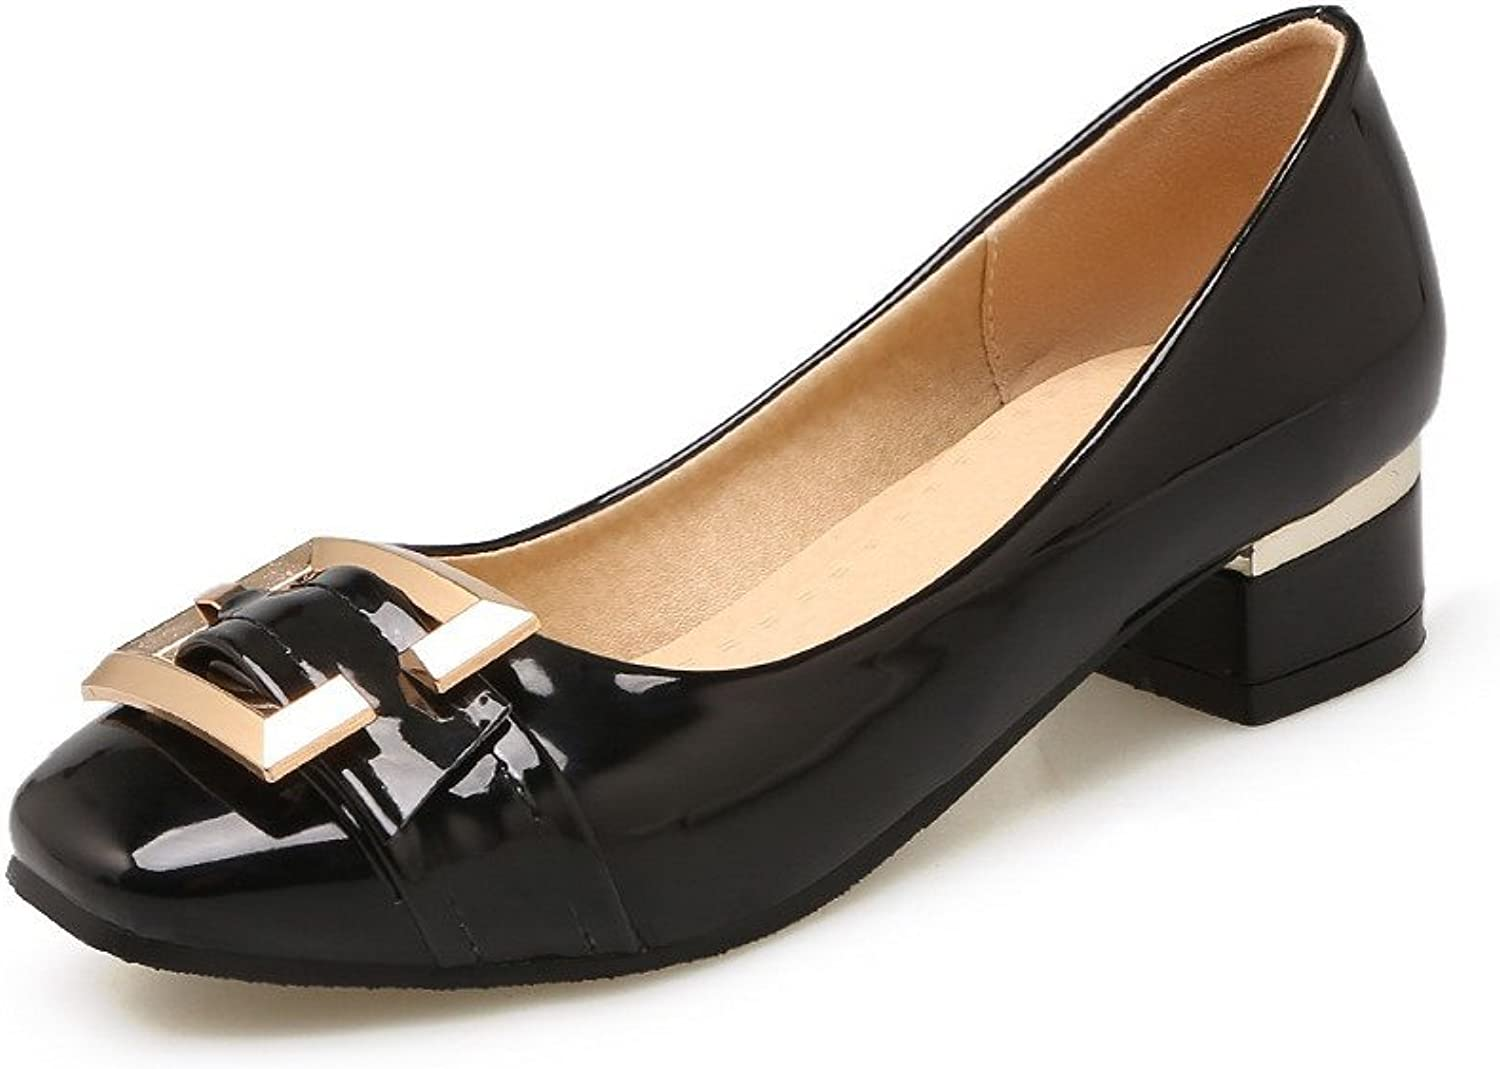 WeiPoot Women's Pull-On Square-Toe Low-Heels PU Solid Pumps-shoes